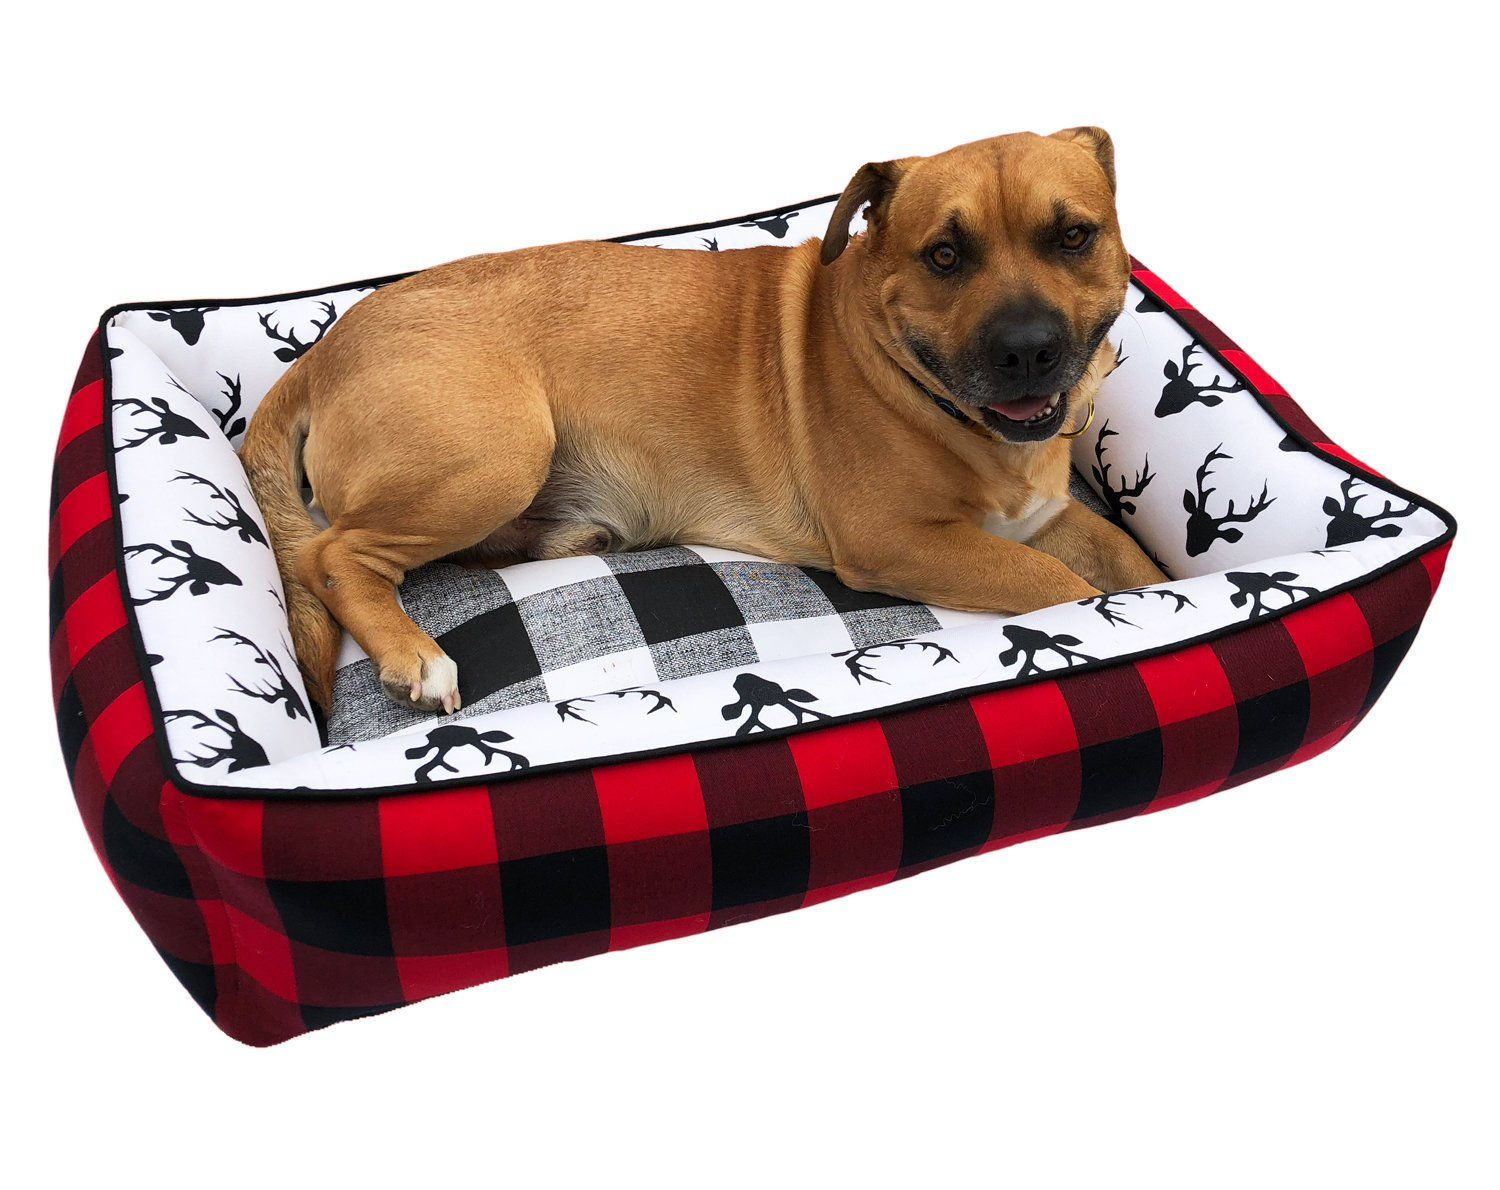 Buffalo Plaid Pet Bed Dog Bed Personalized Plaid Dog Bed Plaid Bedding Large Dog Bed Lumberjack Dog Bed Plaid Pet Bed Pet Beds List Of Fabrics Dog Bed Pillow Fabric